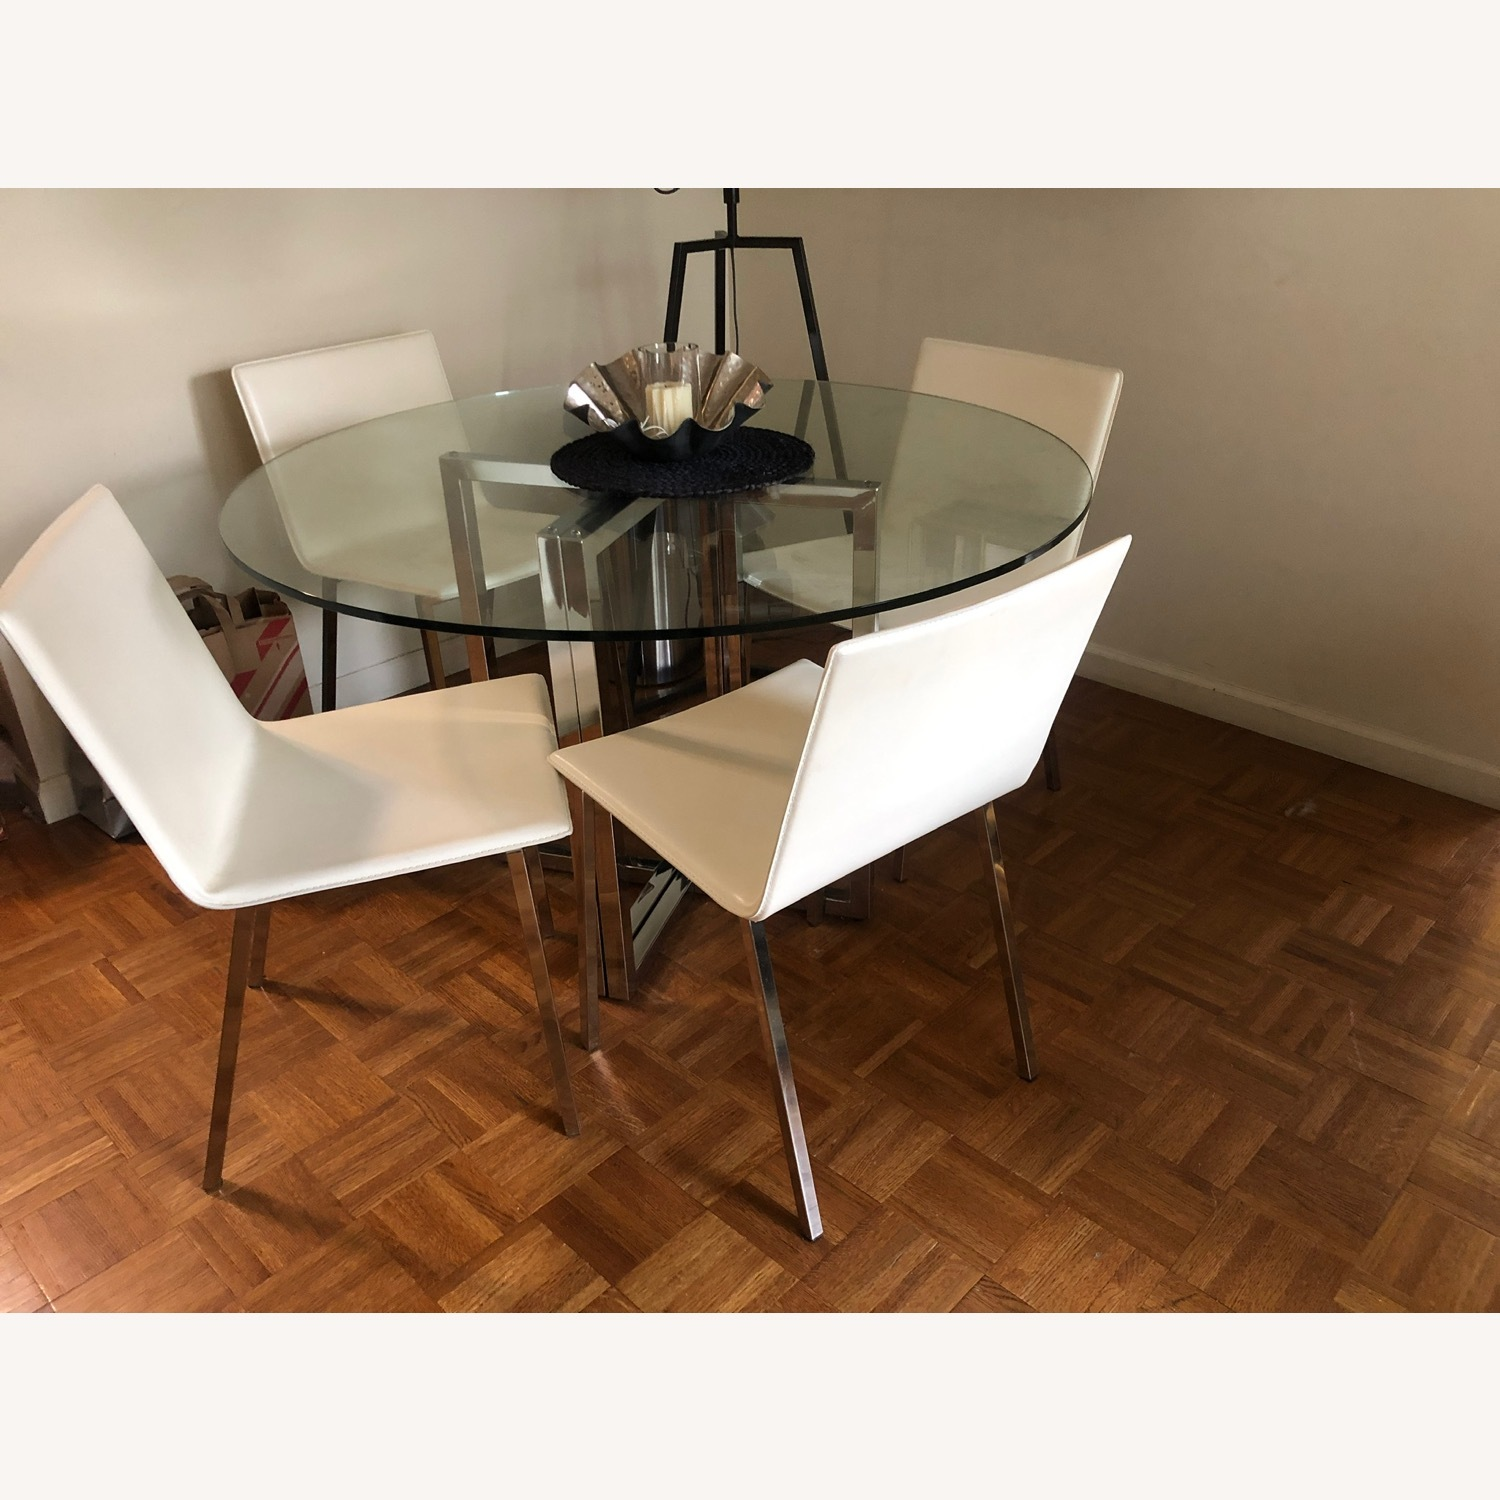 4 Ivory leather Dining chairs - image-1